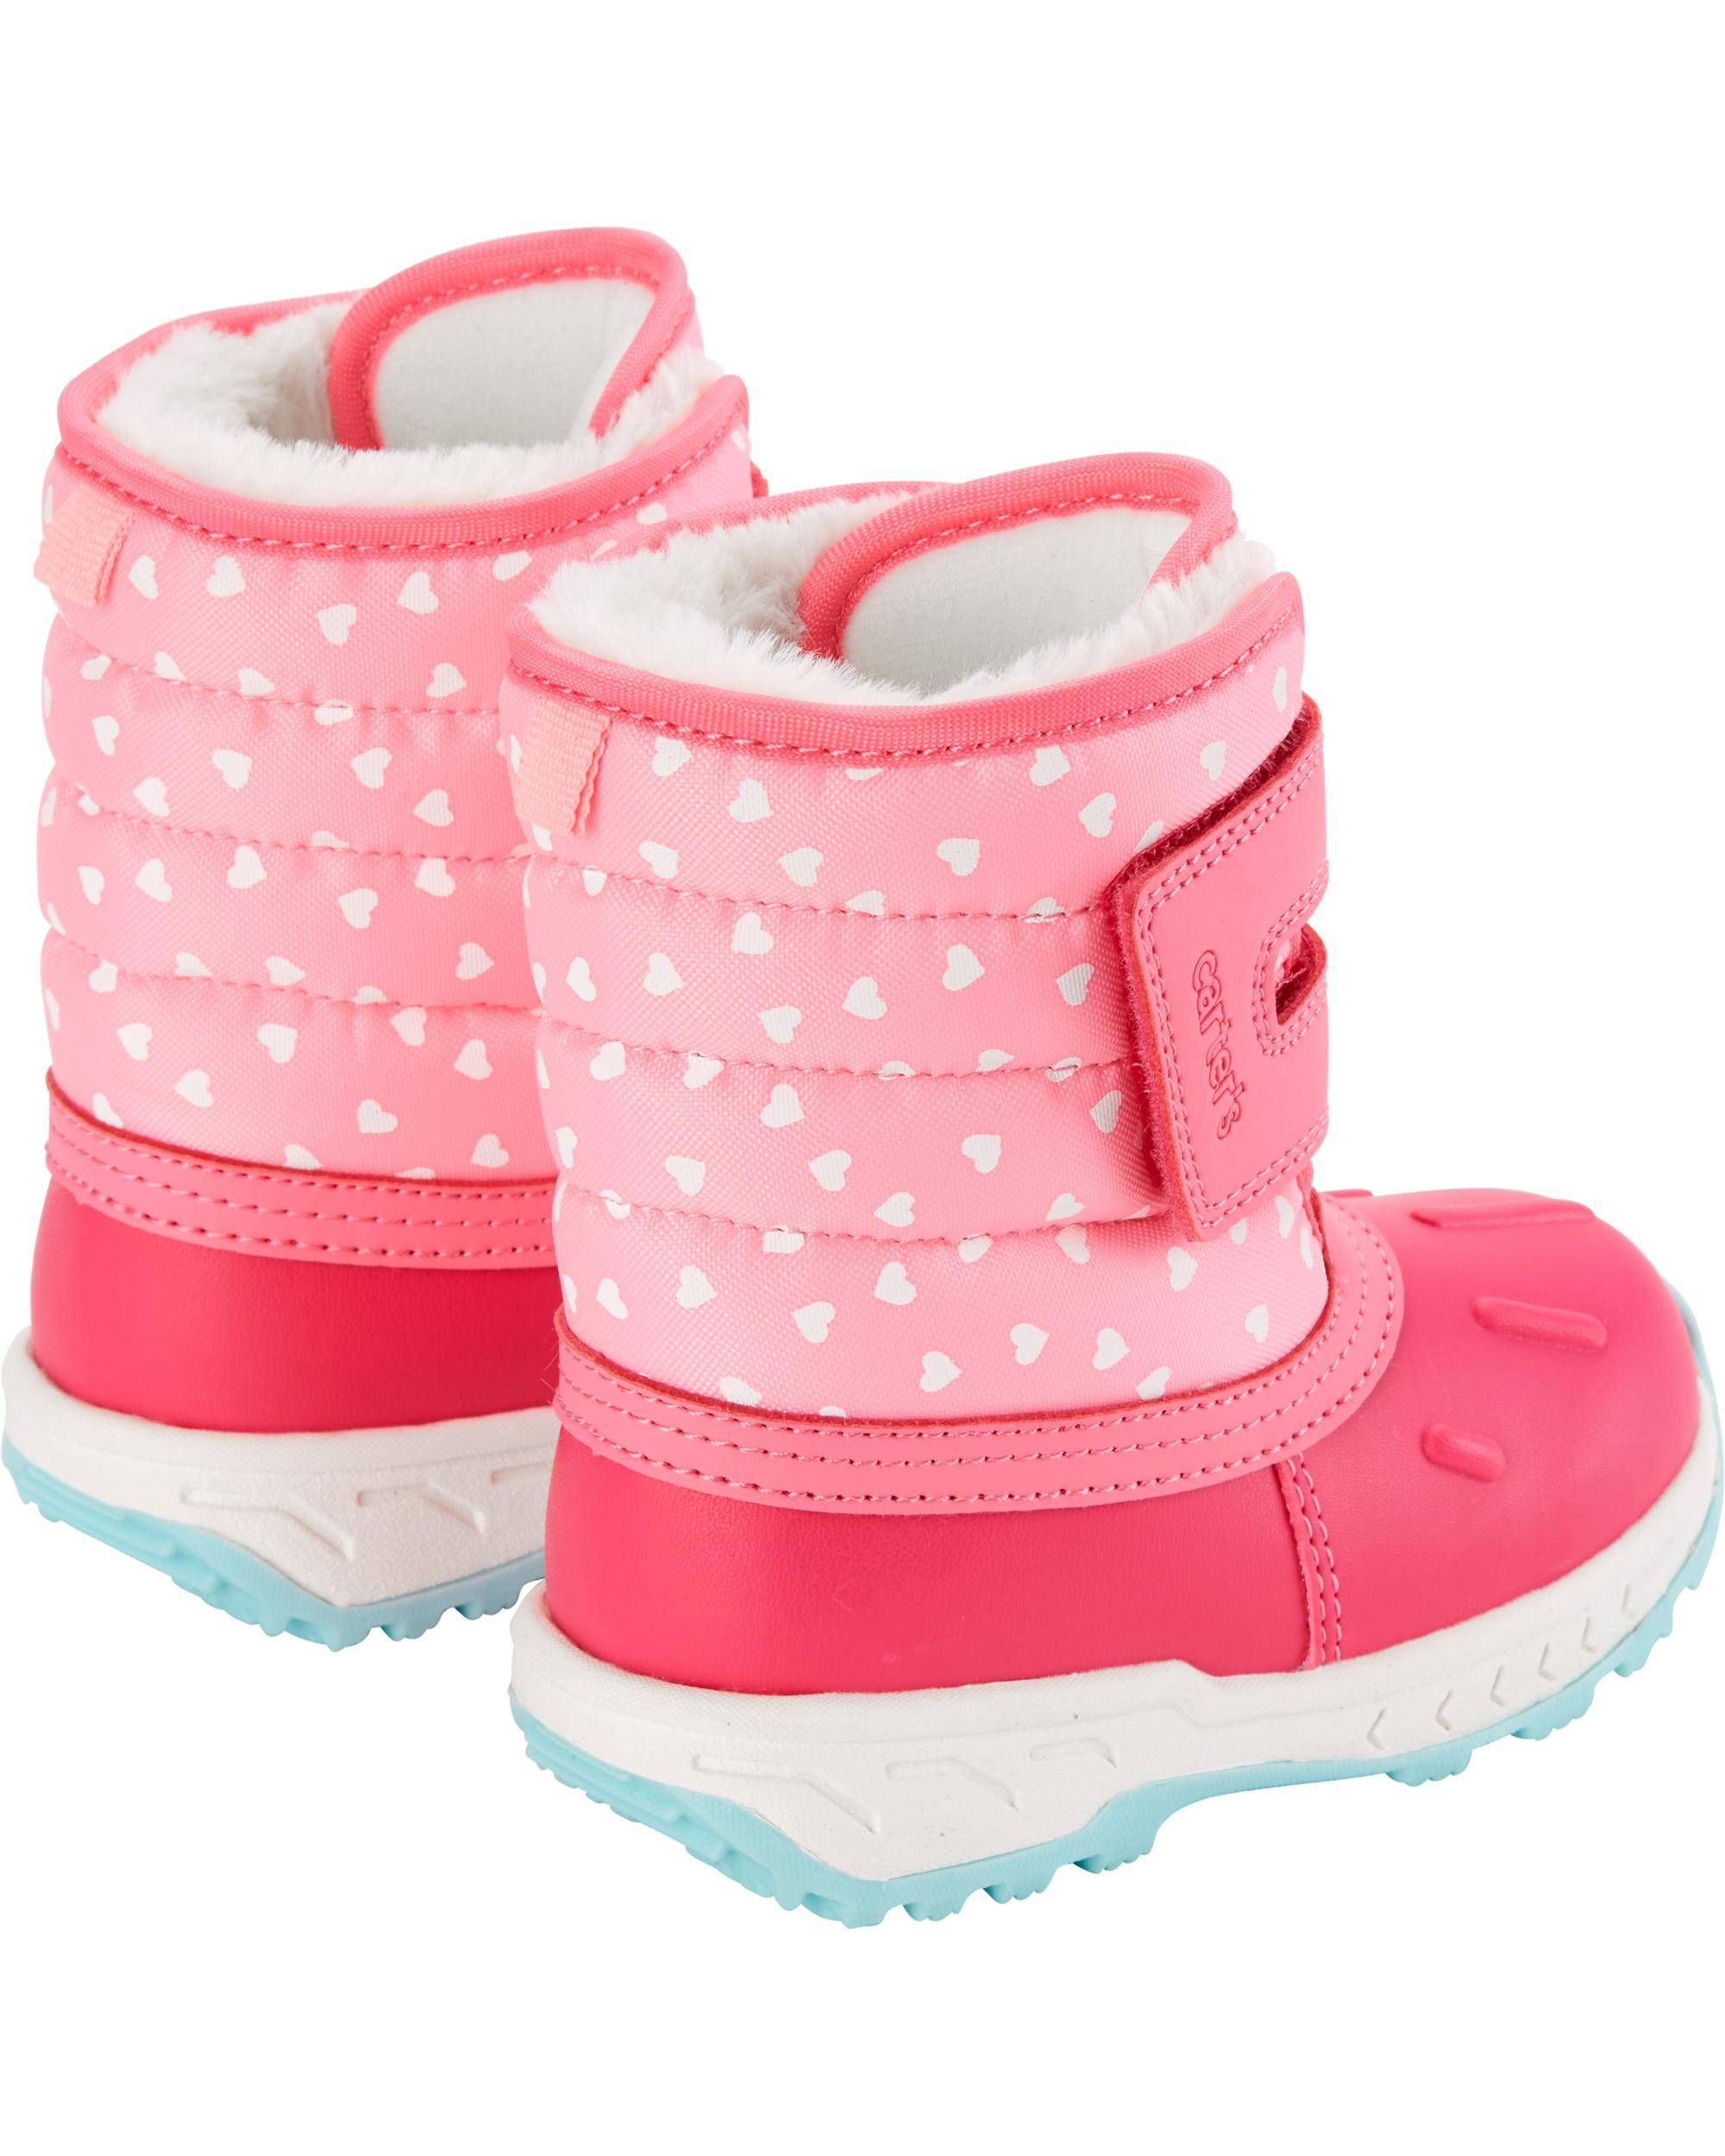 Boy shoes, Baby girl accessories, Snow